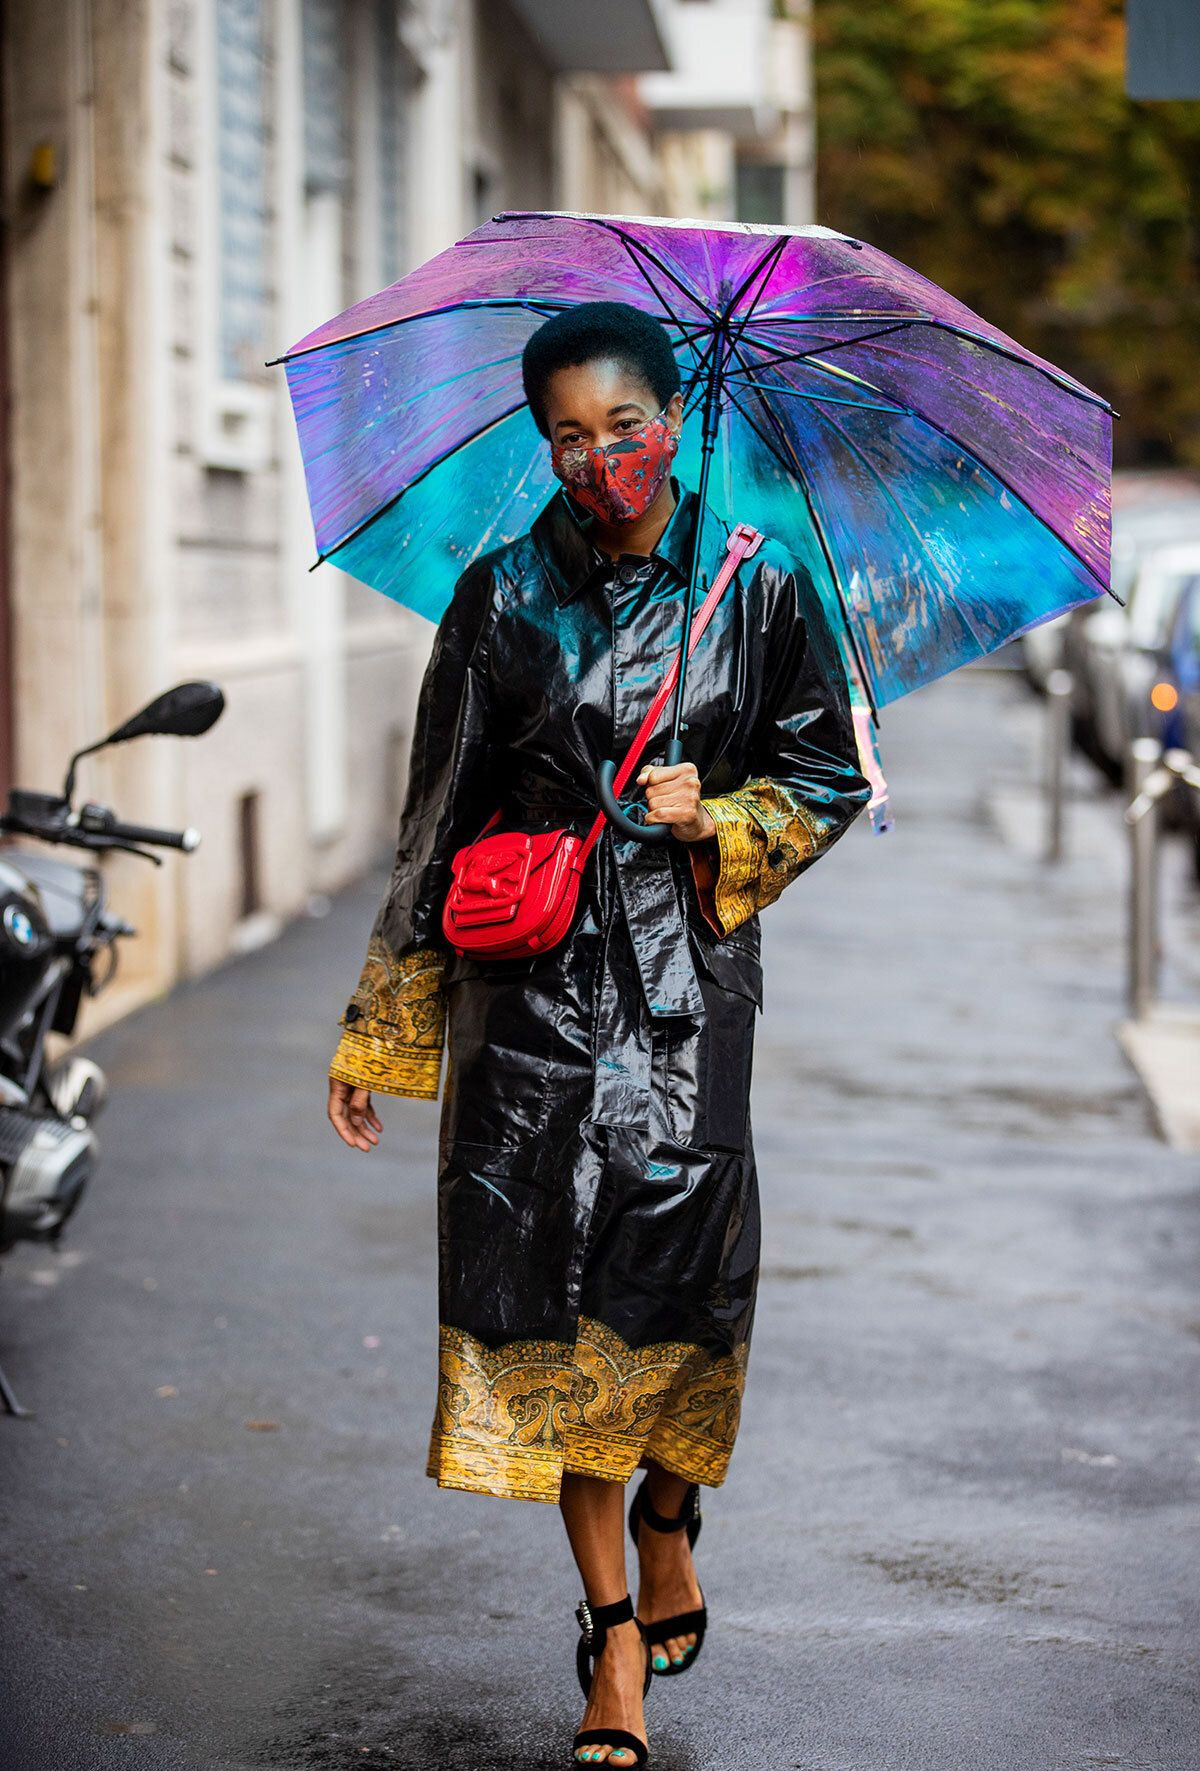 16 Best Cute Umbrellas 2021 — Umbrellas You'll Actually Want to Carry